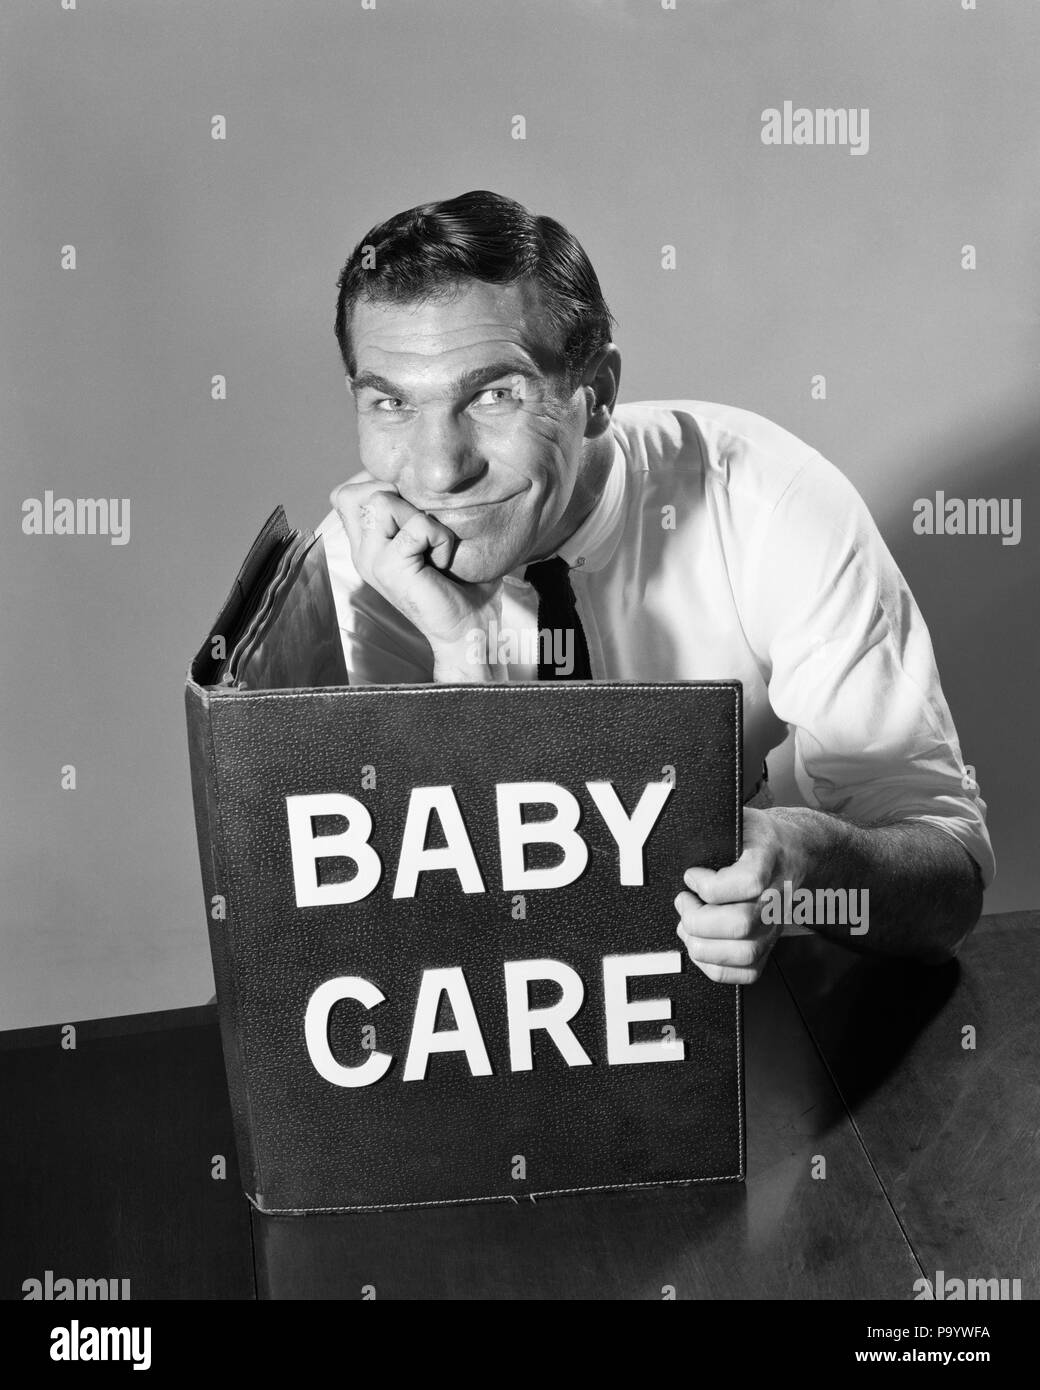 1950s 1960s MAN FATHER HAND ON CHIN READING LARGE BOOK TITLED BABY CARE SMILING LOOKING AT CAMERA - s10171 DEB001 HARS OLD FASHION 1 JUVENILE FACIAL FEAR COMMUNICATION INFORMATION MYSTERY GROWNUP COMMUNICATING PERSONS INSPIRATION GROWN-UP CHIN CONFIDENCE EXPRESSIONS FATHERS B&W SINGLE PARENT SINGLE PARENTS ADVENTURE MANUAL EXCITEMENT KNOWLEDGE DIRECTION TITLED DEB001 BEFUDDLED COMMUNICATE MID-ADULT MID-ADULT MAN SOLUTIONS YOUNGSTER BLACK AND WHITE CAUCASIAN ETHNICITY OLD FASHIONED - Stock Image